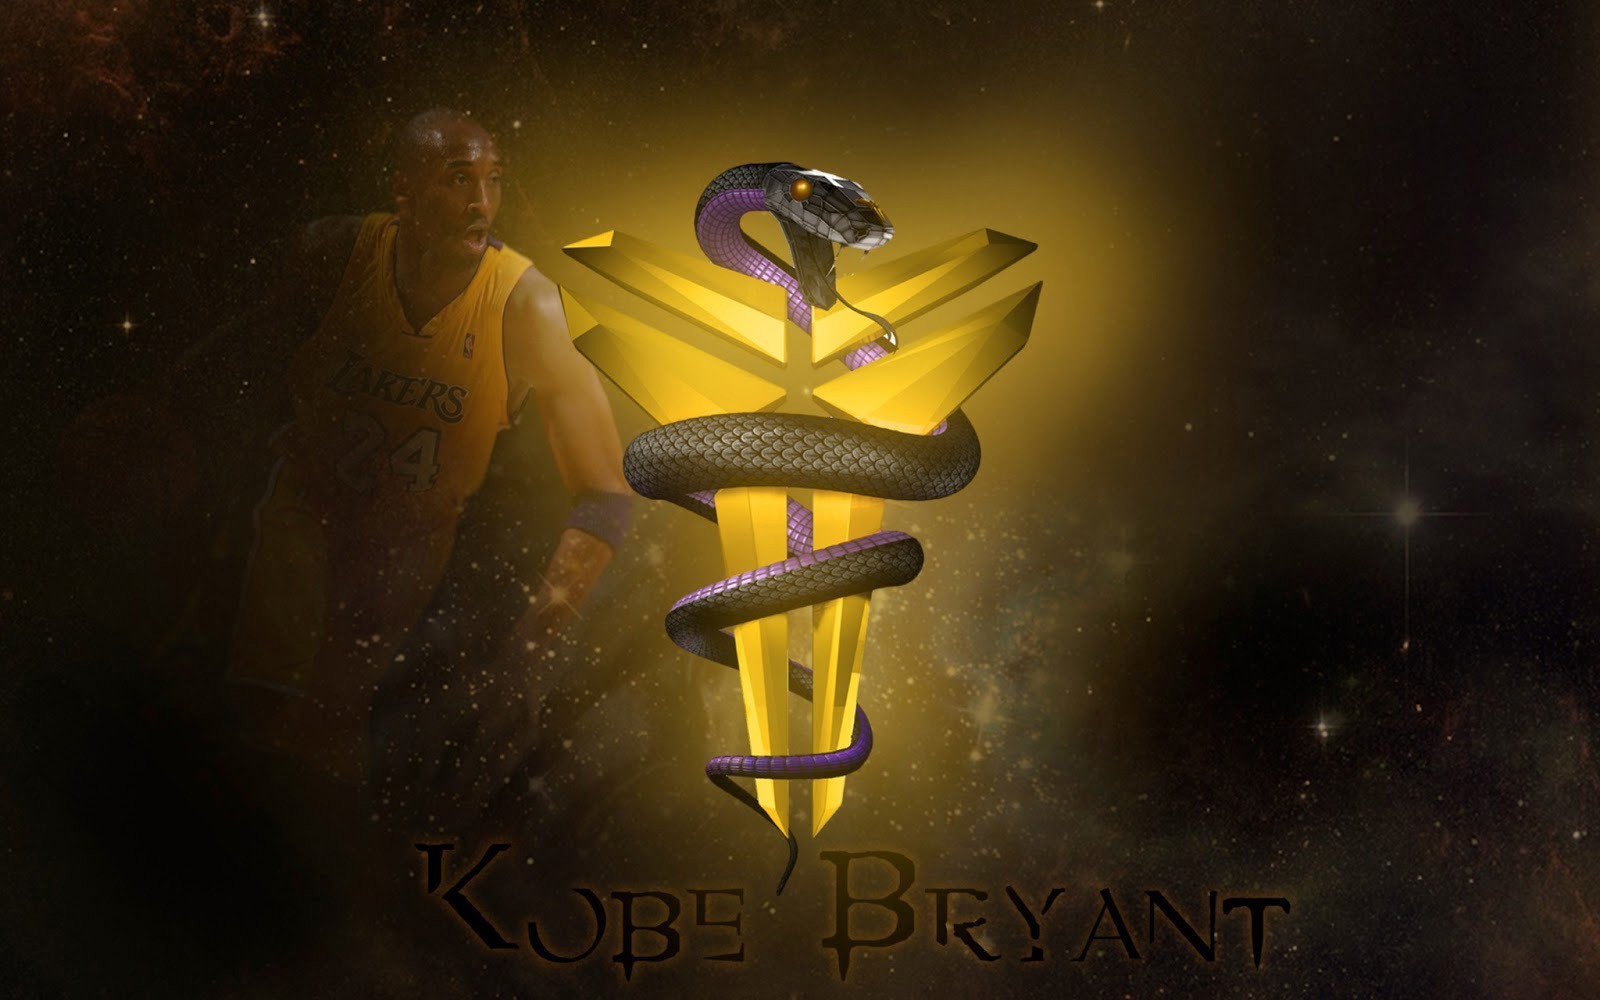 kobe bryant nice wallpapers - photo #15